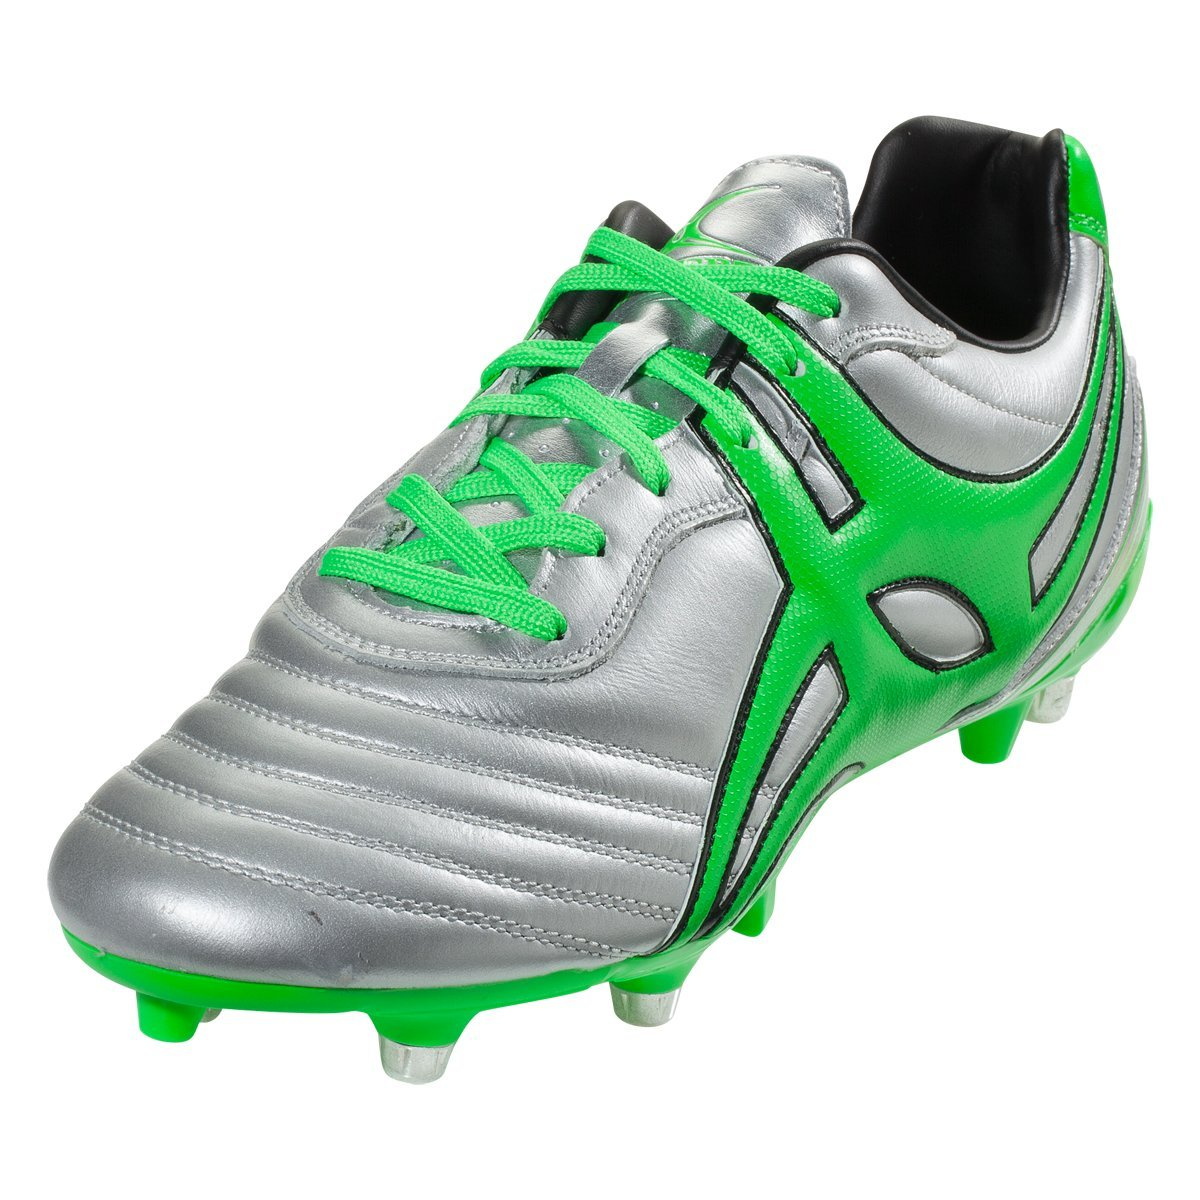 Gilbert Jink Pro 6 Stud Rugby Boot, Silver, US 11 by Gilbert